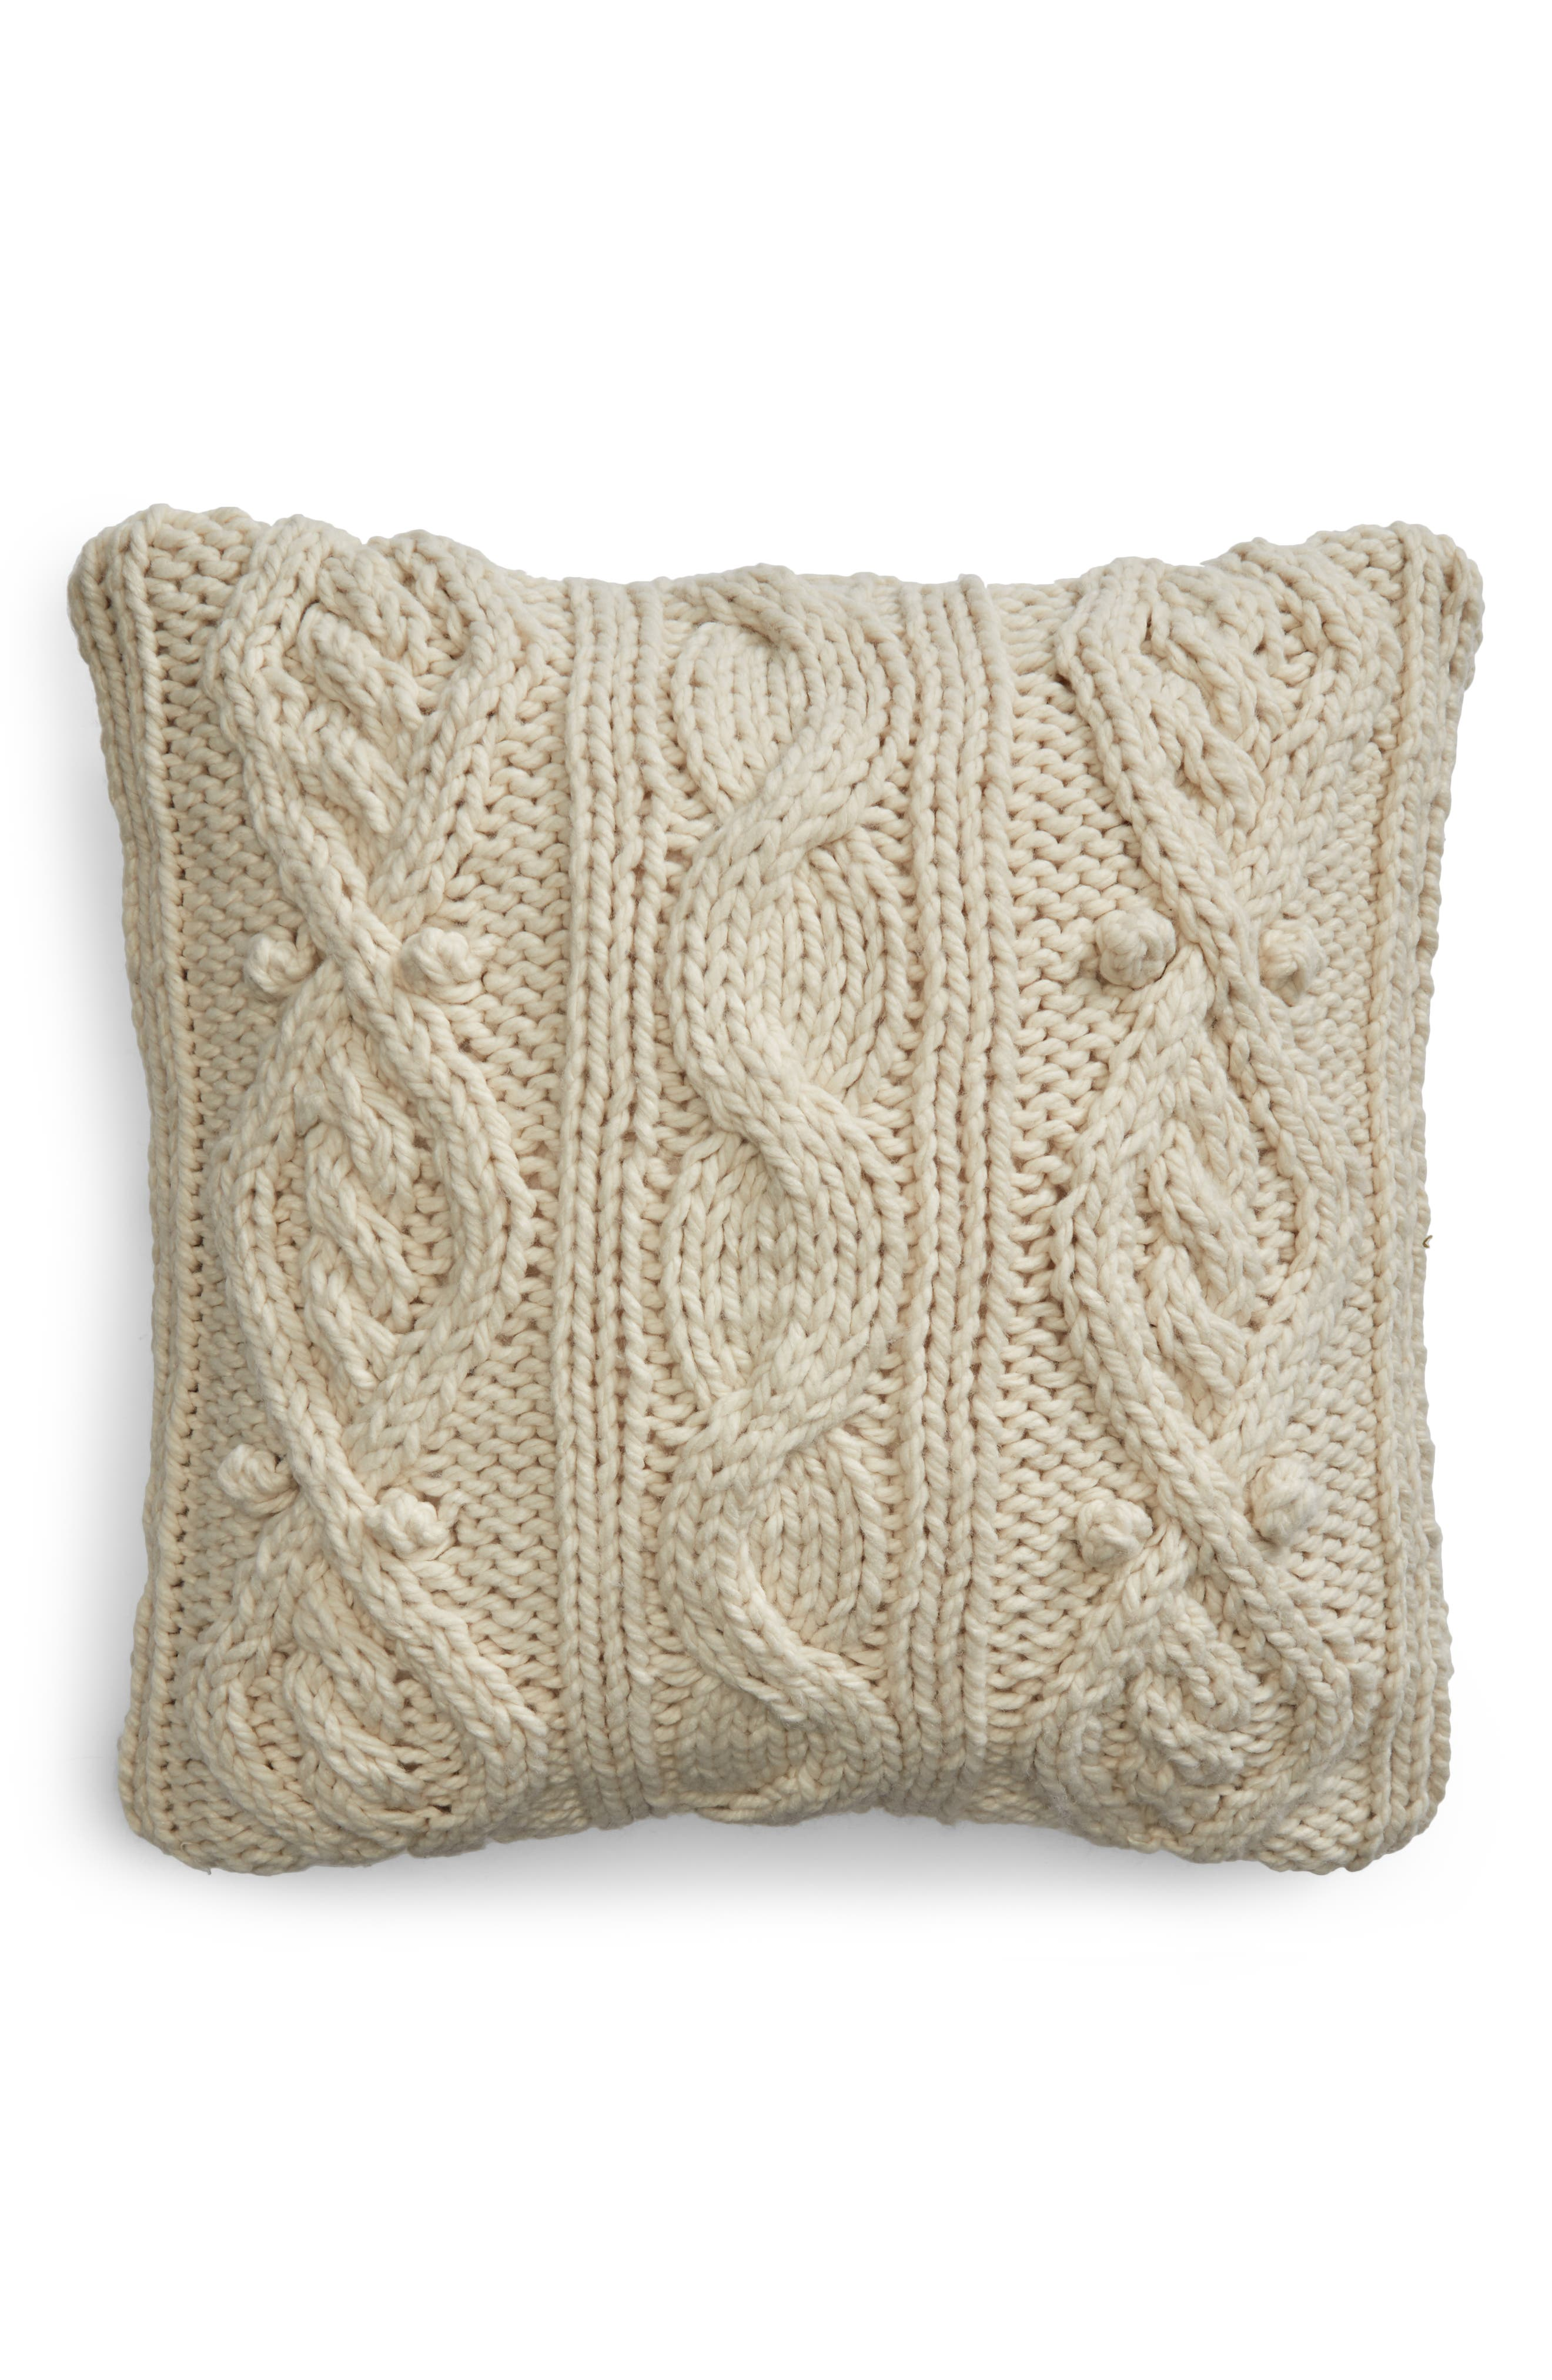 Chunky Cable Knit Accent Pillow,                         Main,                         color, IVORY DOVE